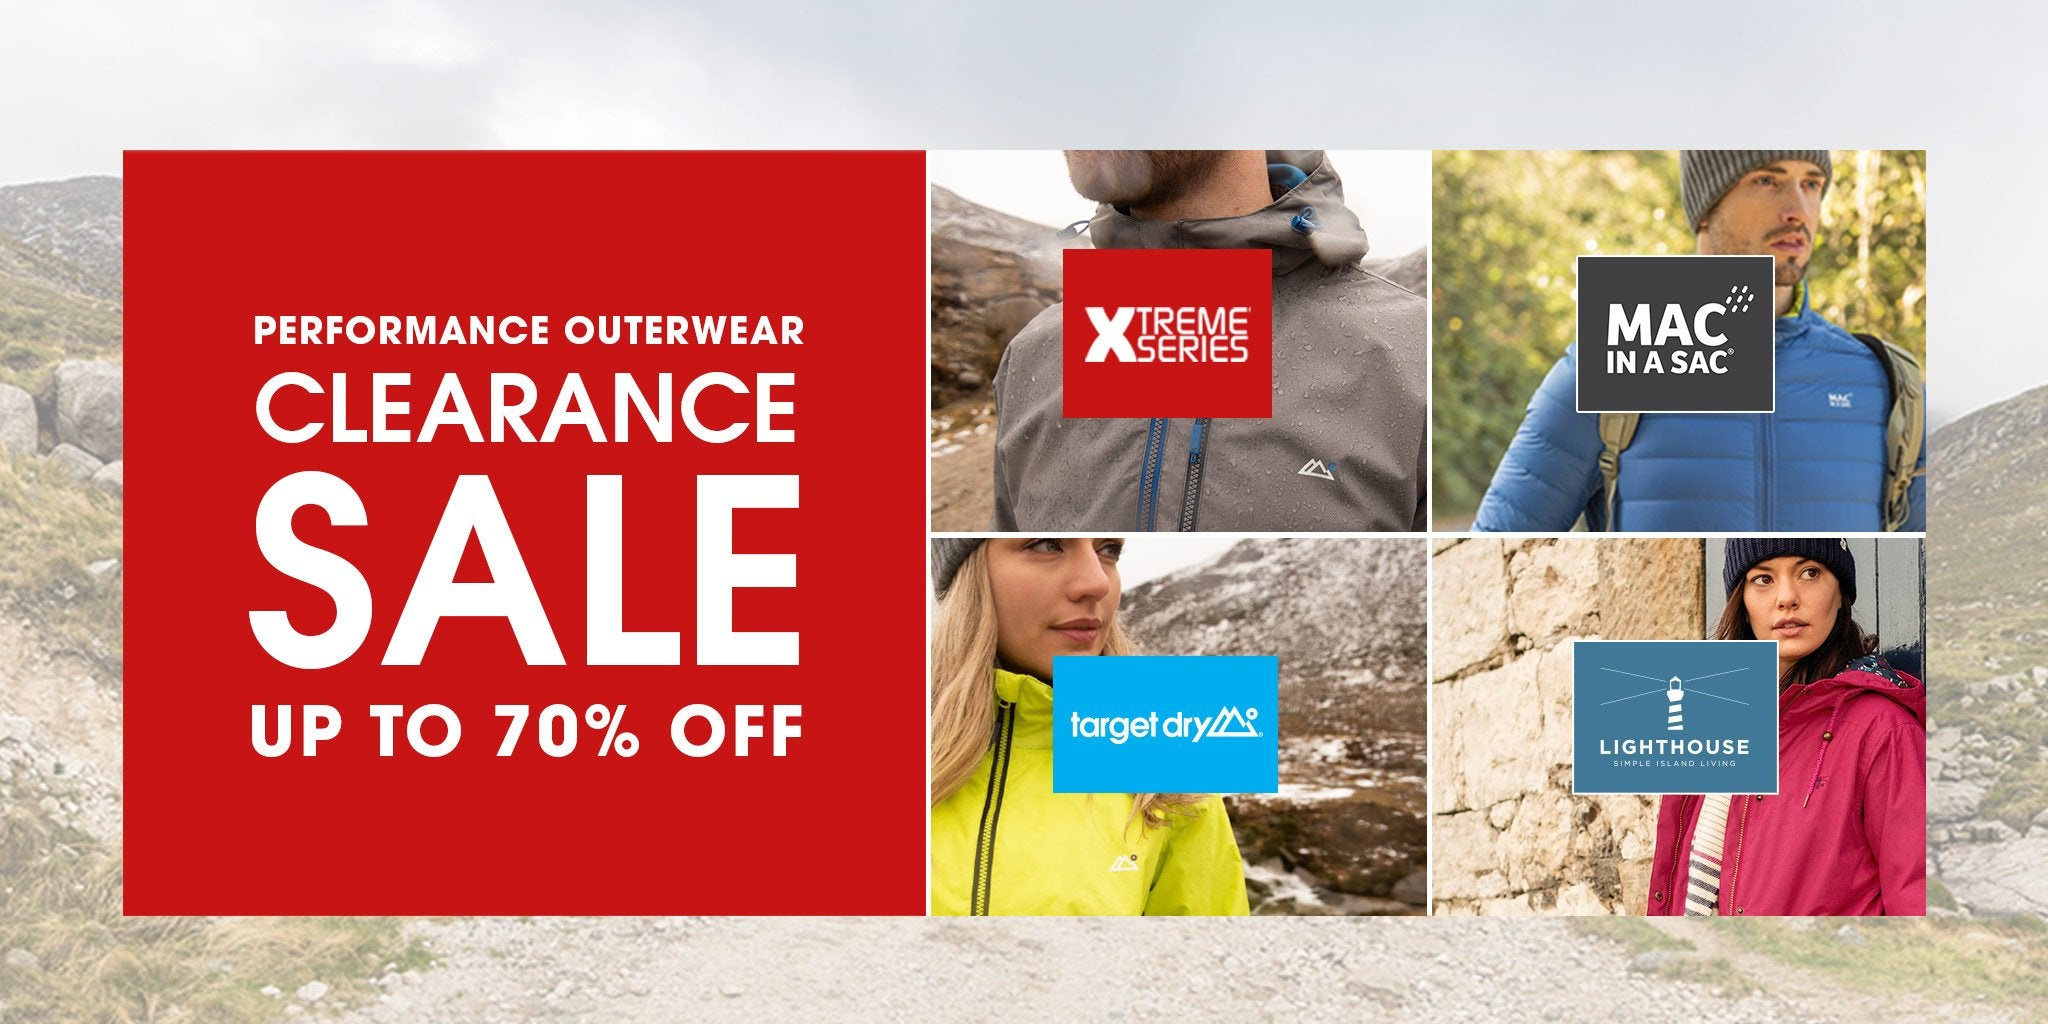 xtreme series, 40% off sale on technical outerwear